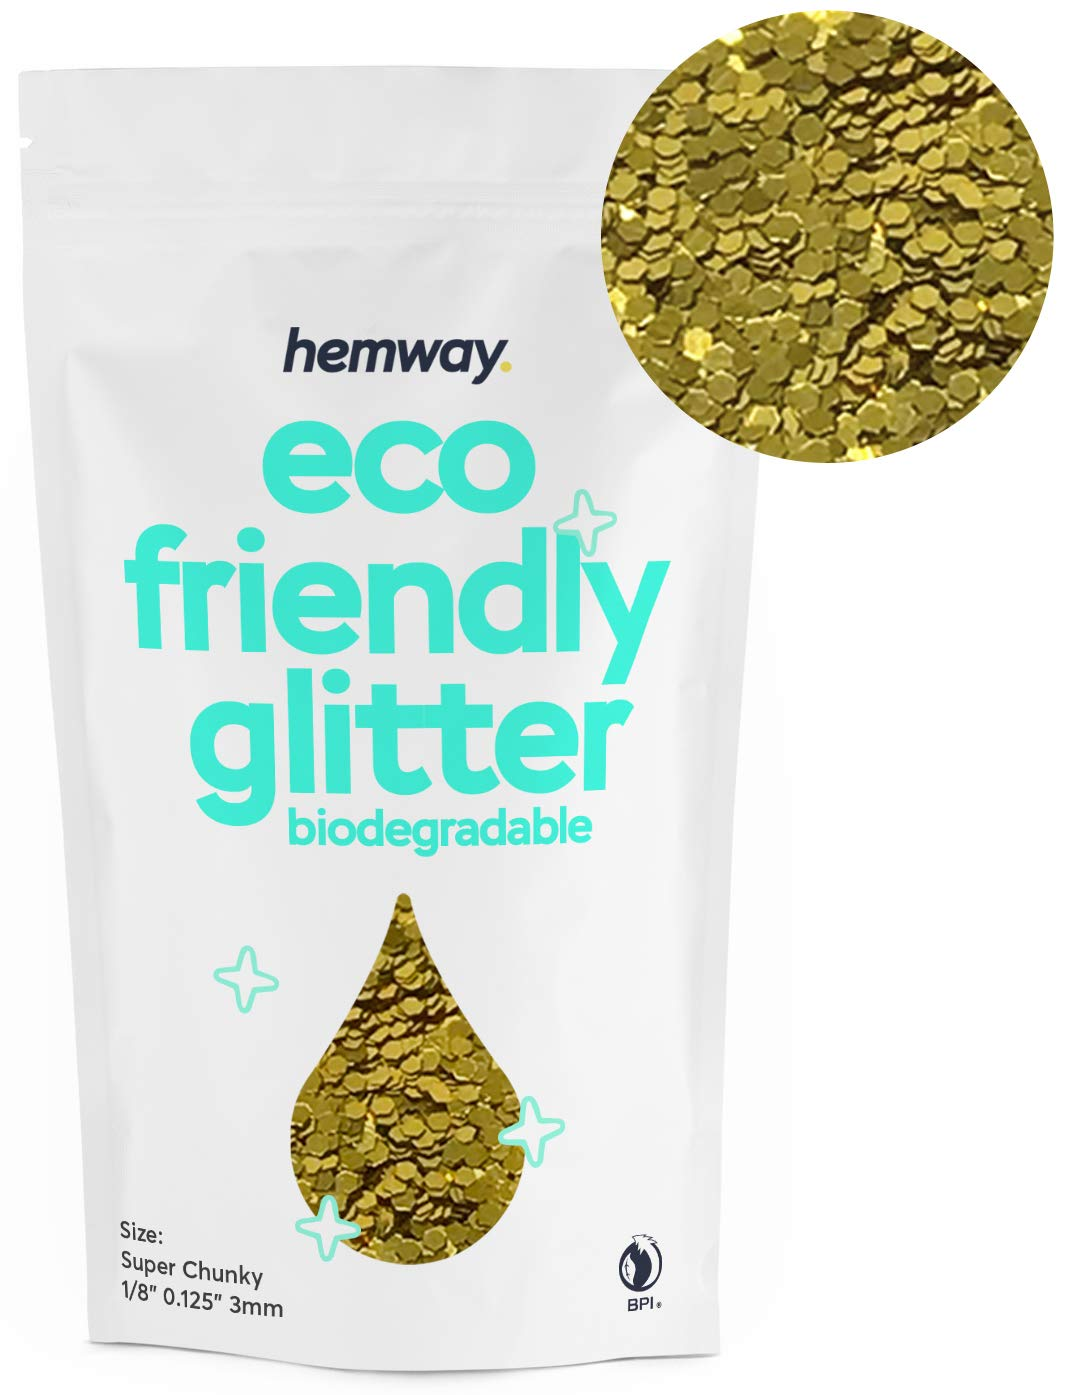 """Hemway Eco Friendly Biodegradable Glitter 100g / 3.5oz Bio Cosmetic Safe Sparkle Vegan for Face, Eyeshadow, Body, Hair, Nail and Festival Makeup, Craft - 1/8"""" 0.125"""" 3mm - Gold"""